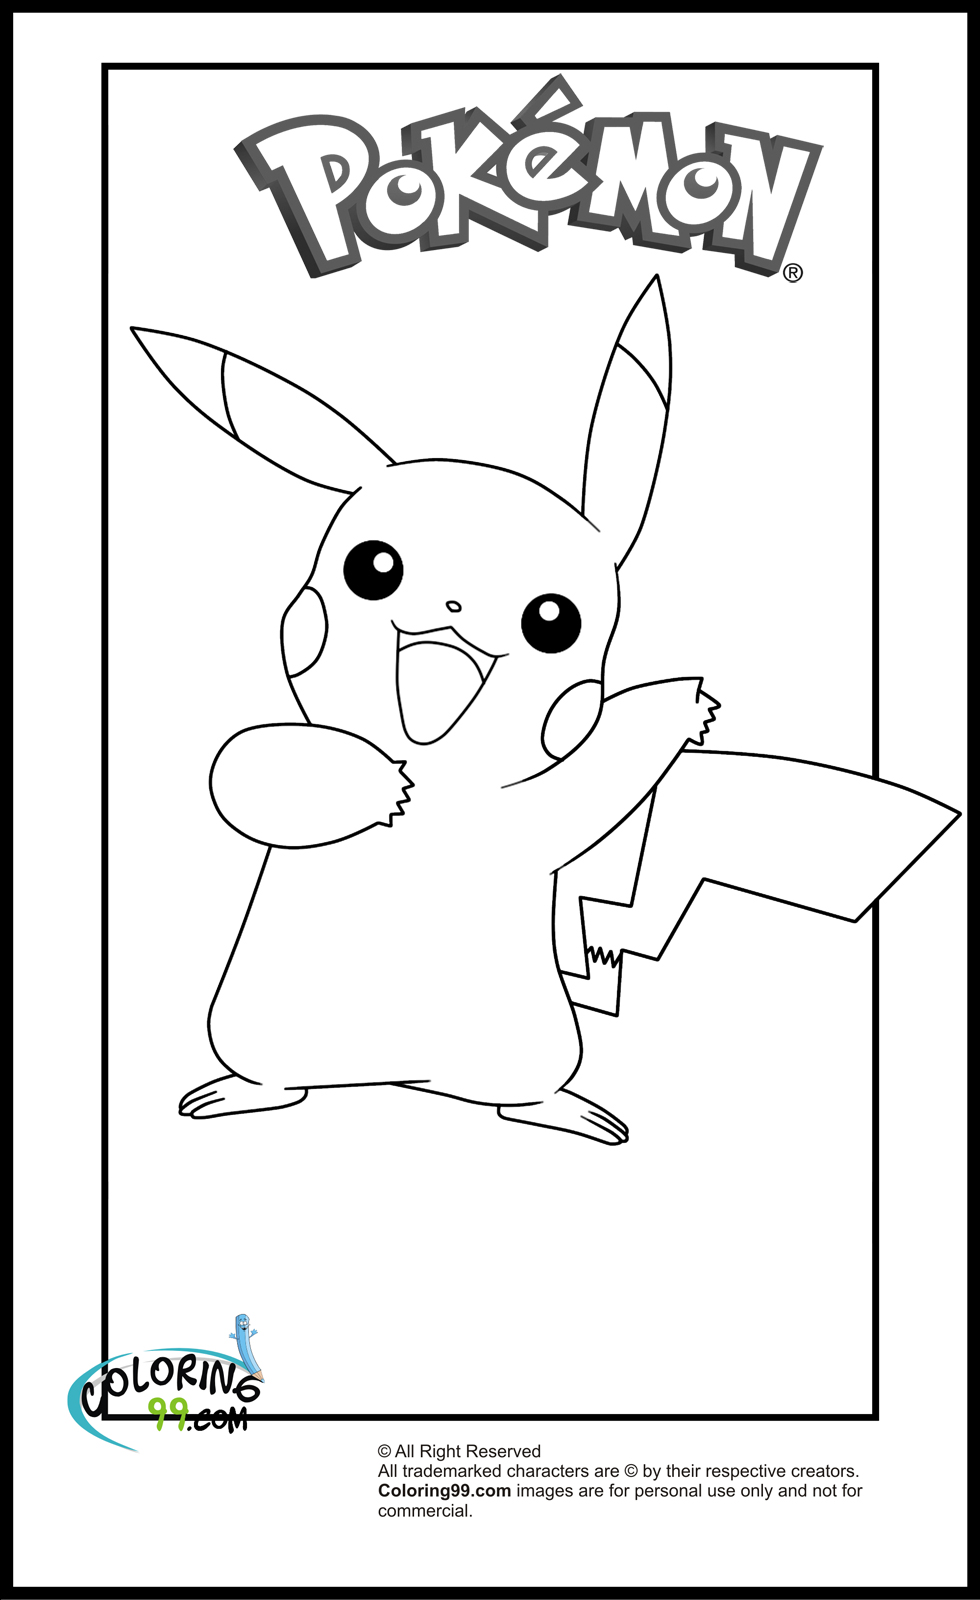 free online coloring pages pokemon black white pokemon coloring pages join your favorite pokemon on an free coloring white online black pokemon pages